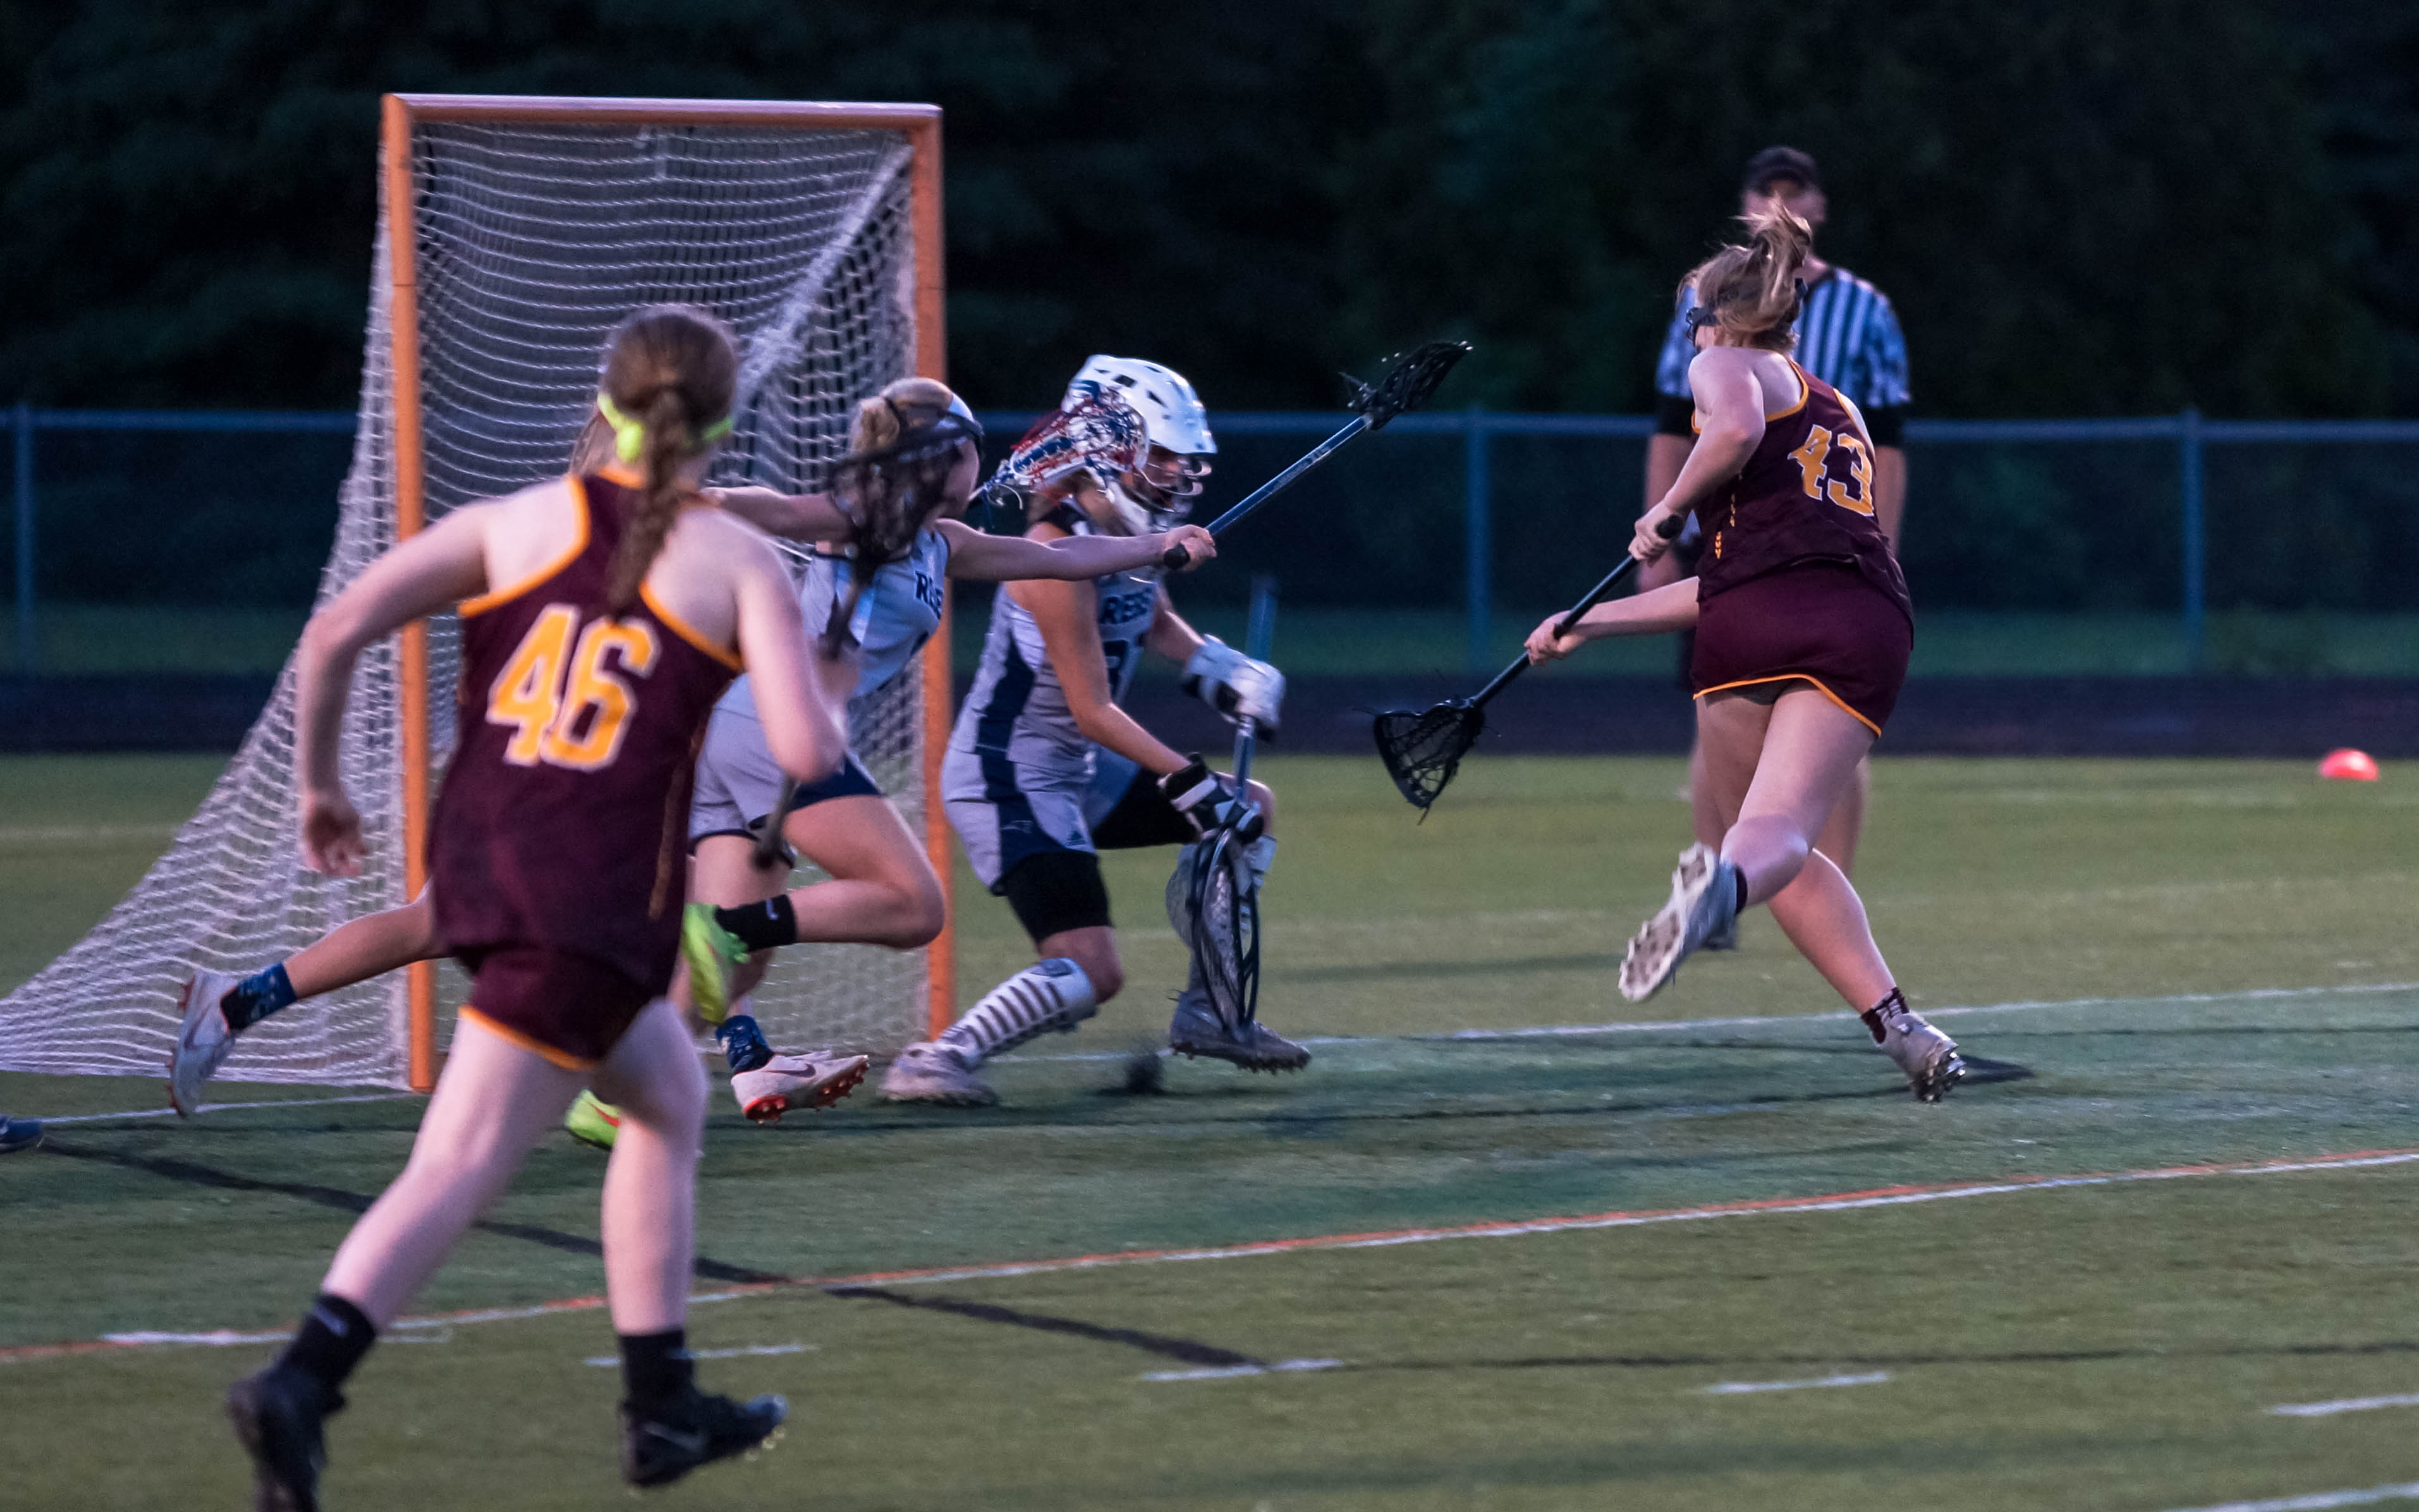 Forest Lake's Mikaela Ness (43) netted the game-winning goal just 17 seconds into overtime to send the Rangers to the state tournament. Forest Lake defeated Champlin Park 7-6 at Osseo High School on Wednesday. Photo by Korey McDermott, SportsEngine